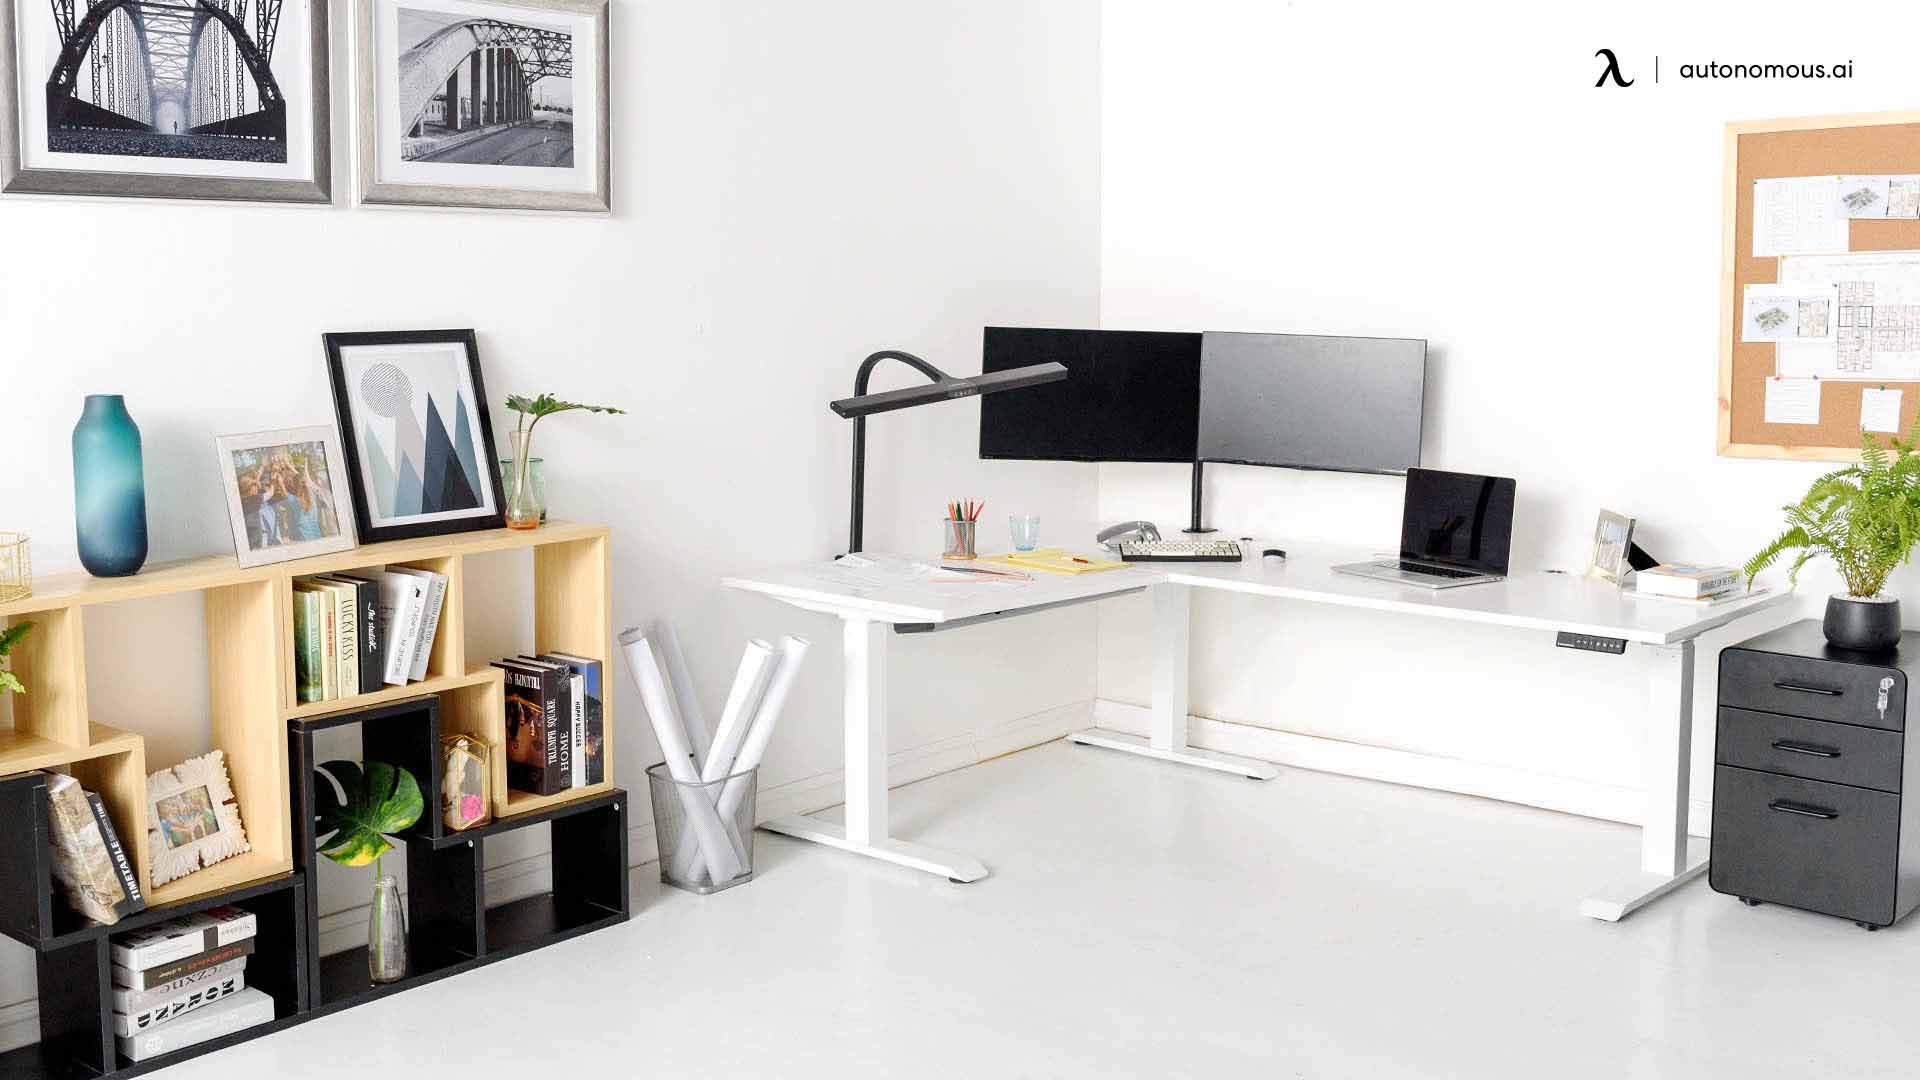 Why Should You Use an L-Shaped Standing Desk Frame